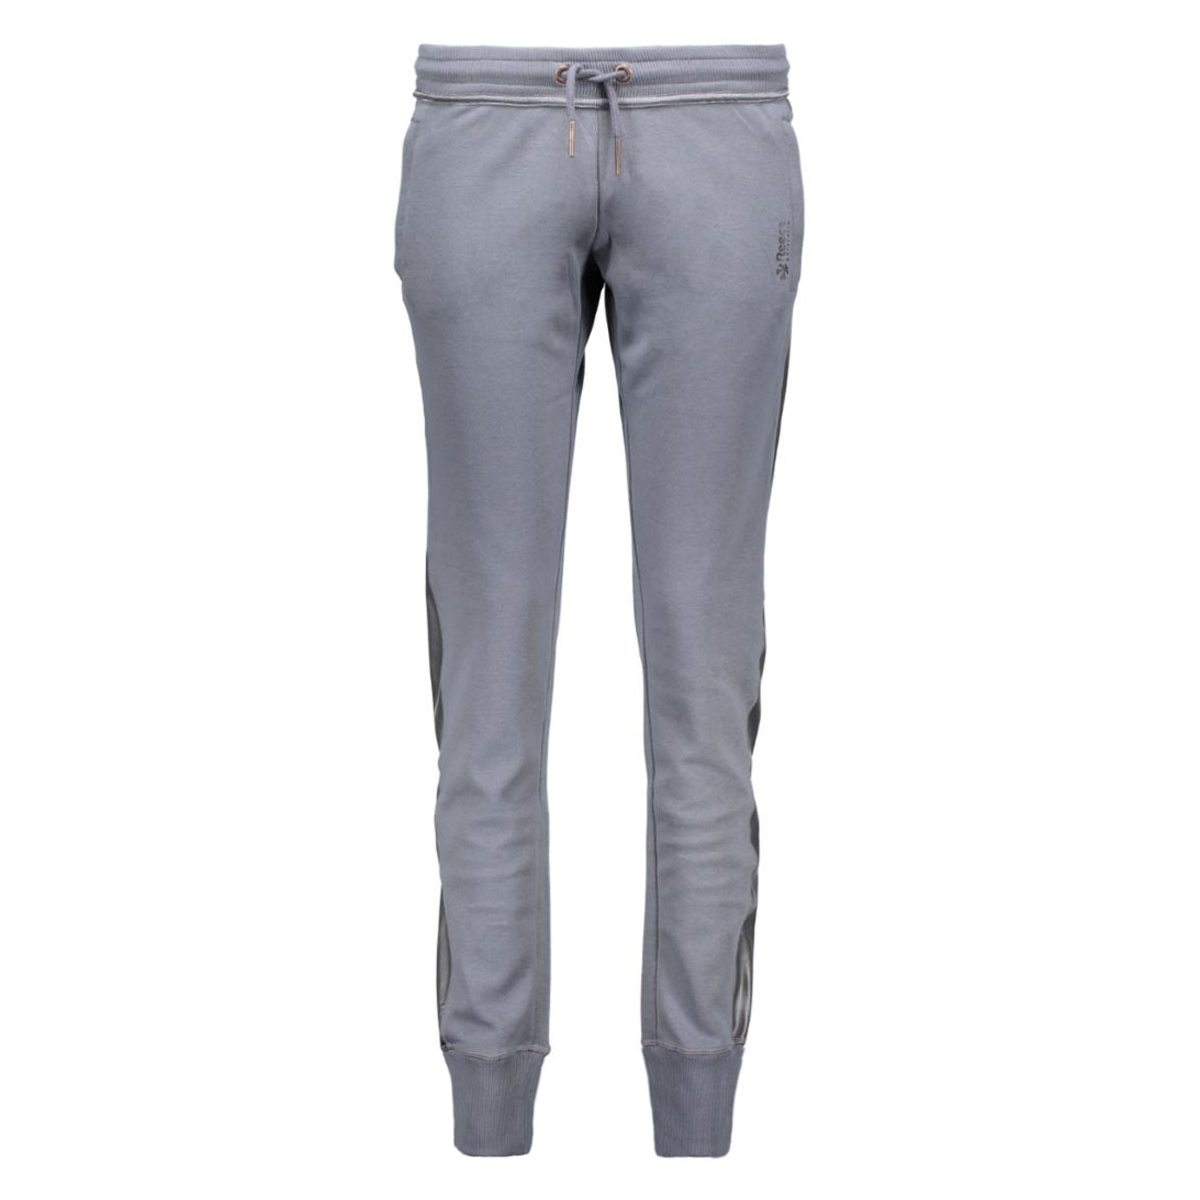 834616 sweat pants reece sport broek 9990 antracite